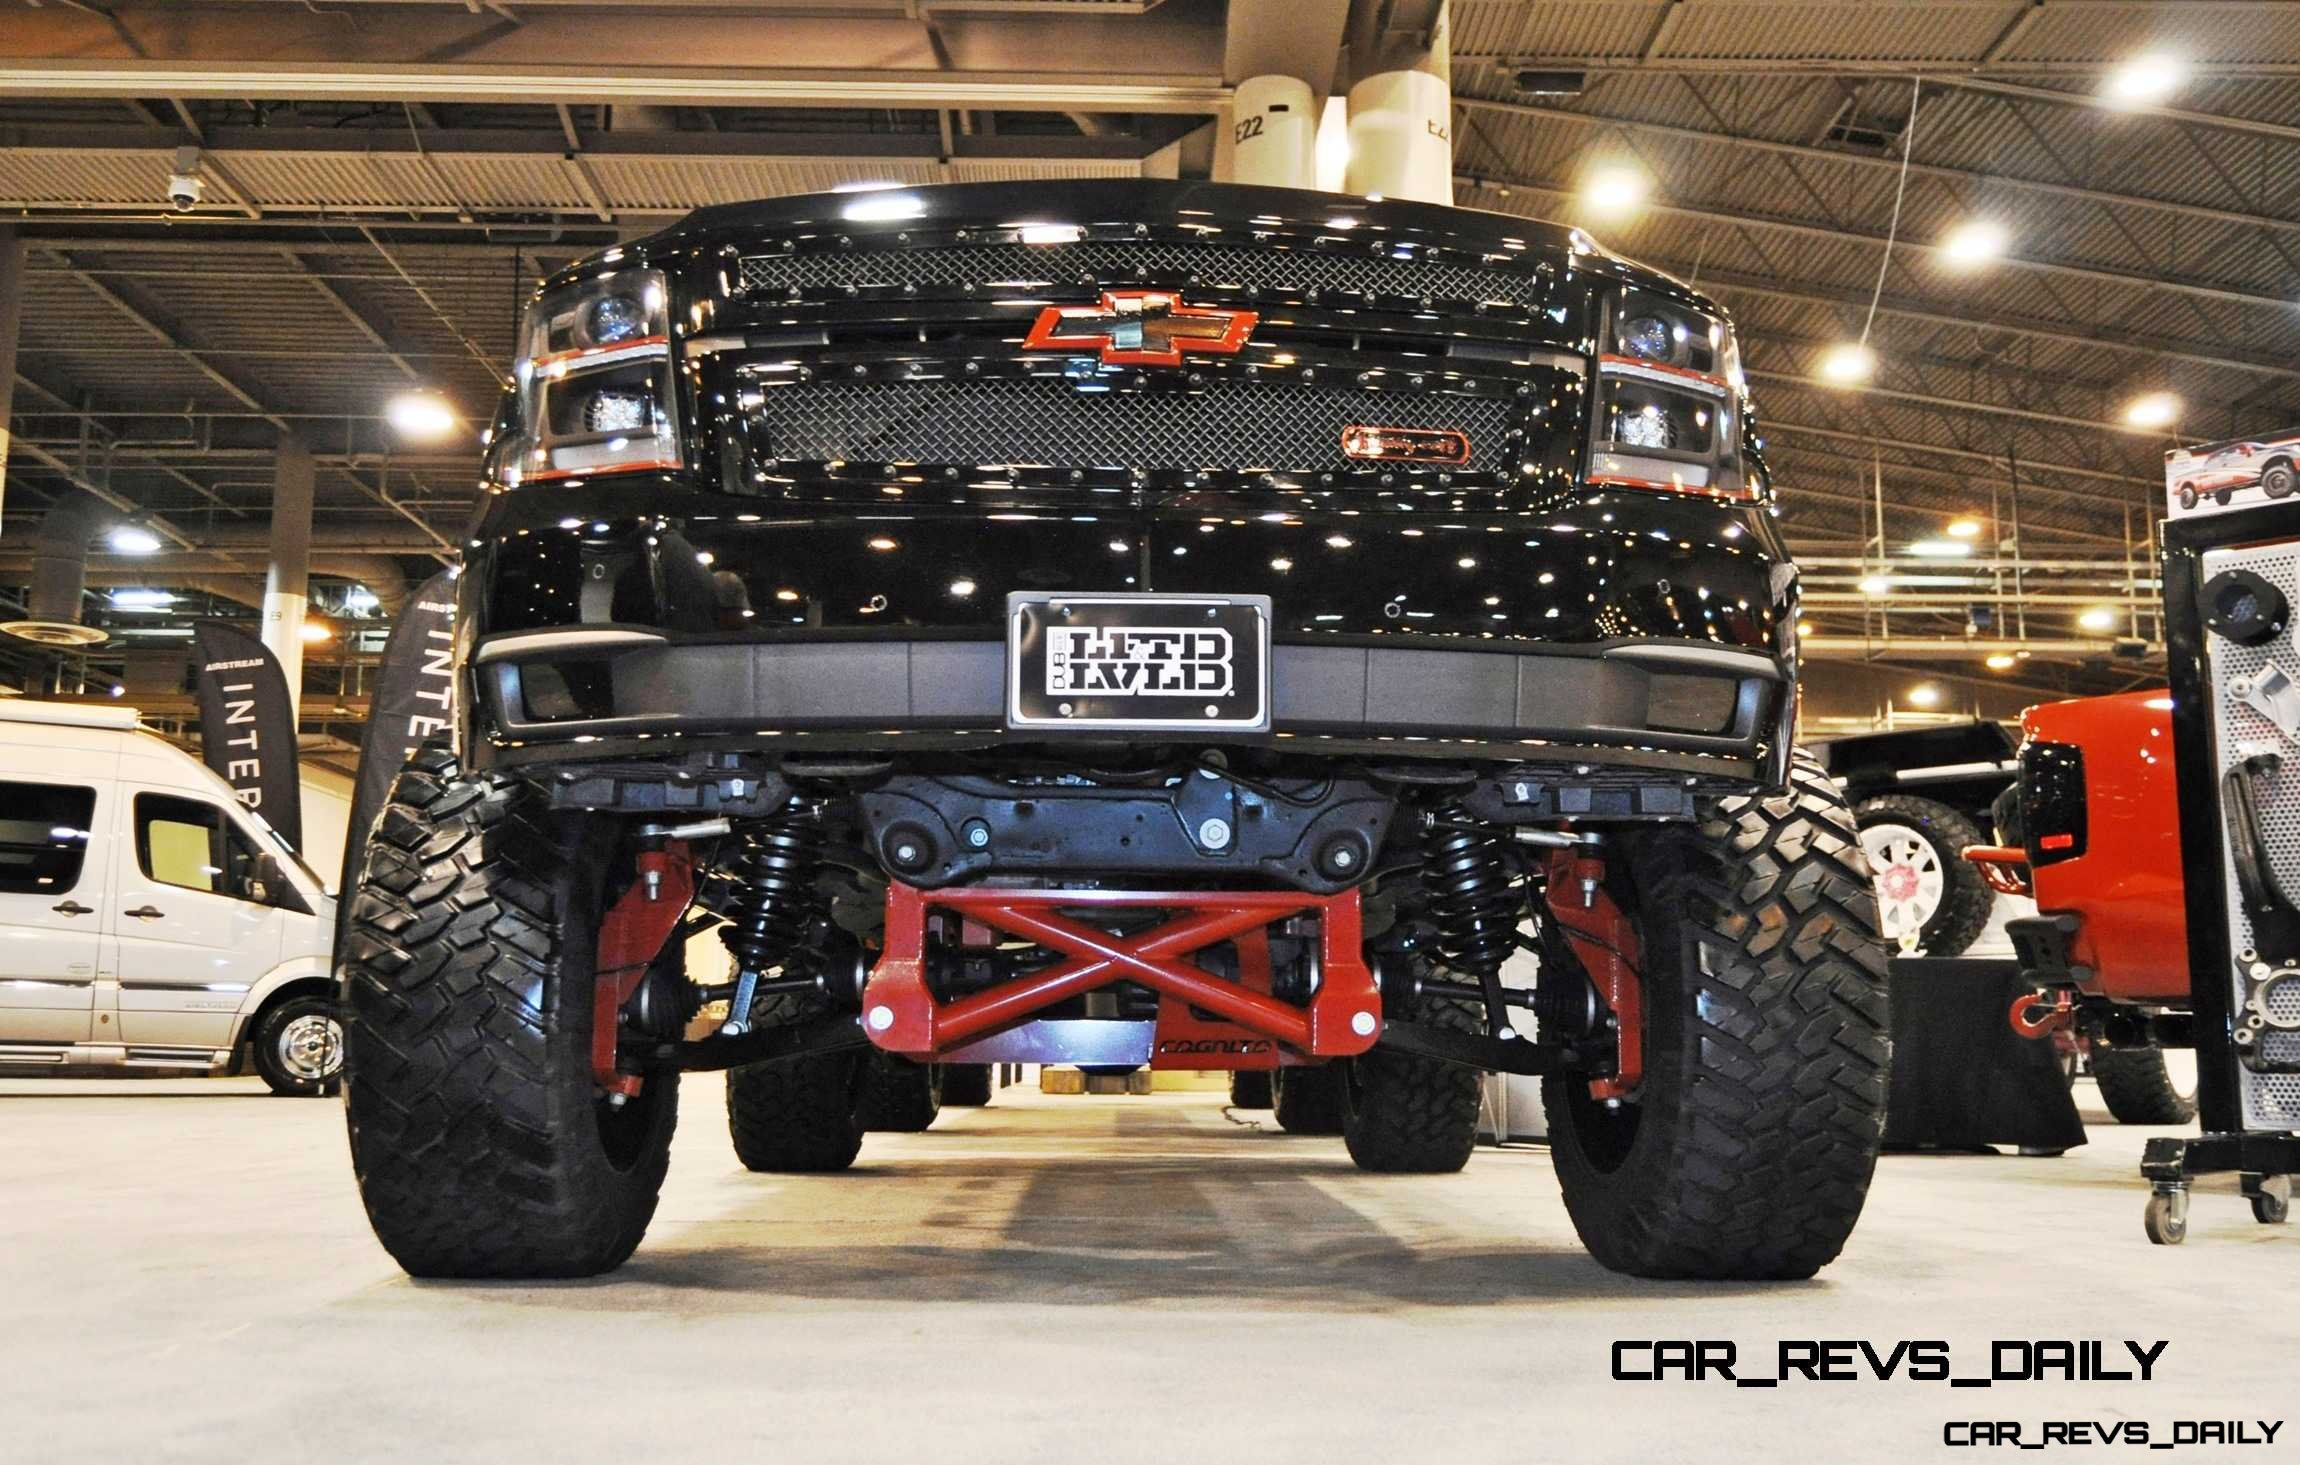 Four Things to Consider When Choosing a Lift Kit for a Truck